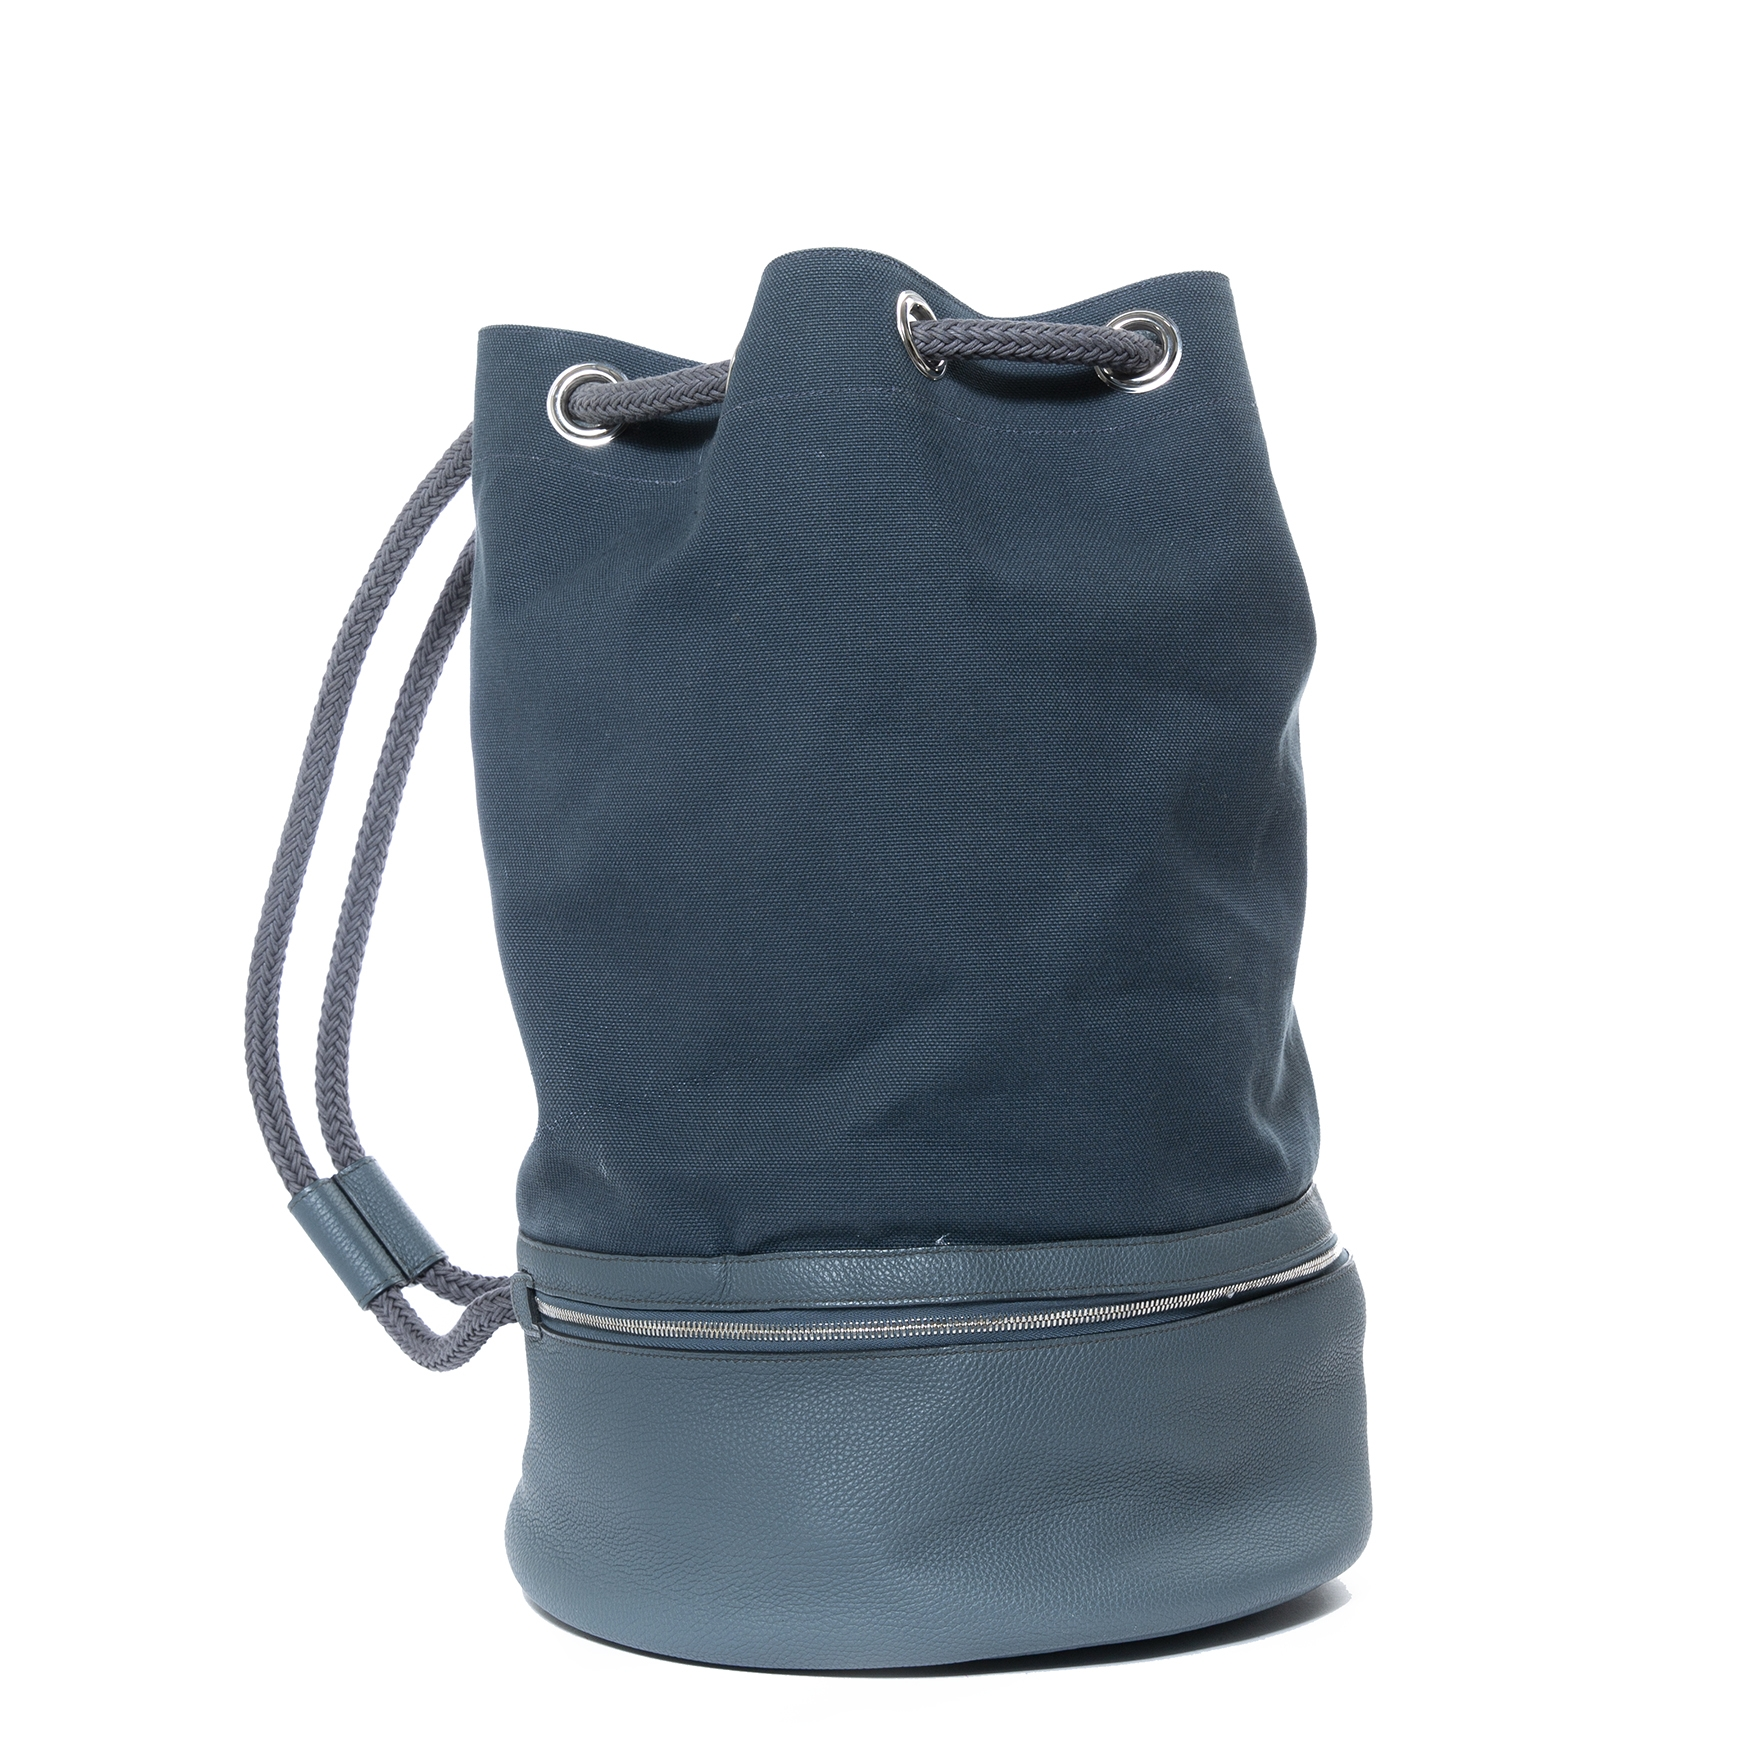 We buy and sell your authentic Hermès Blue Marin Drawstring Bucket Bag